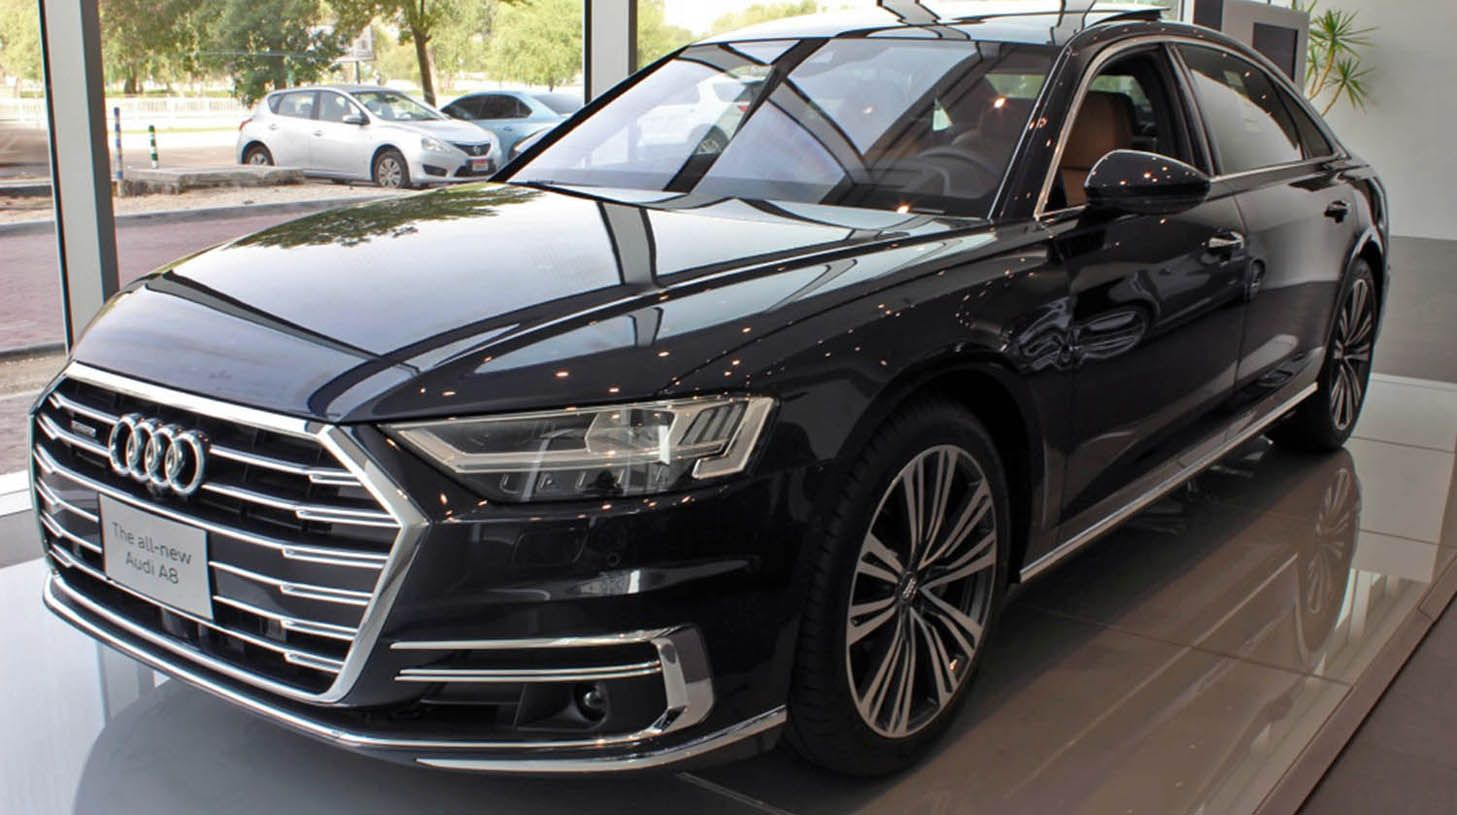 Black Audi A8 2018 My Dream Rides Audi Sedan Black Audi Audi A8